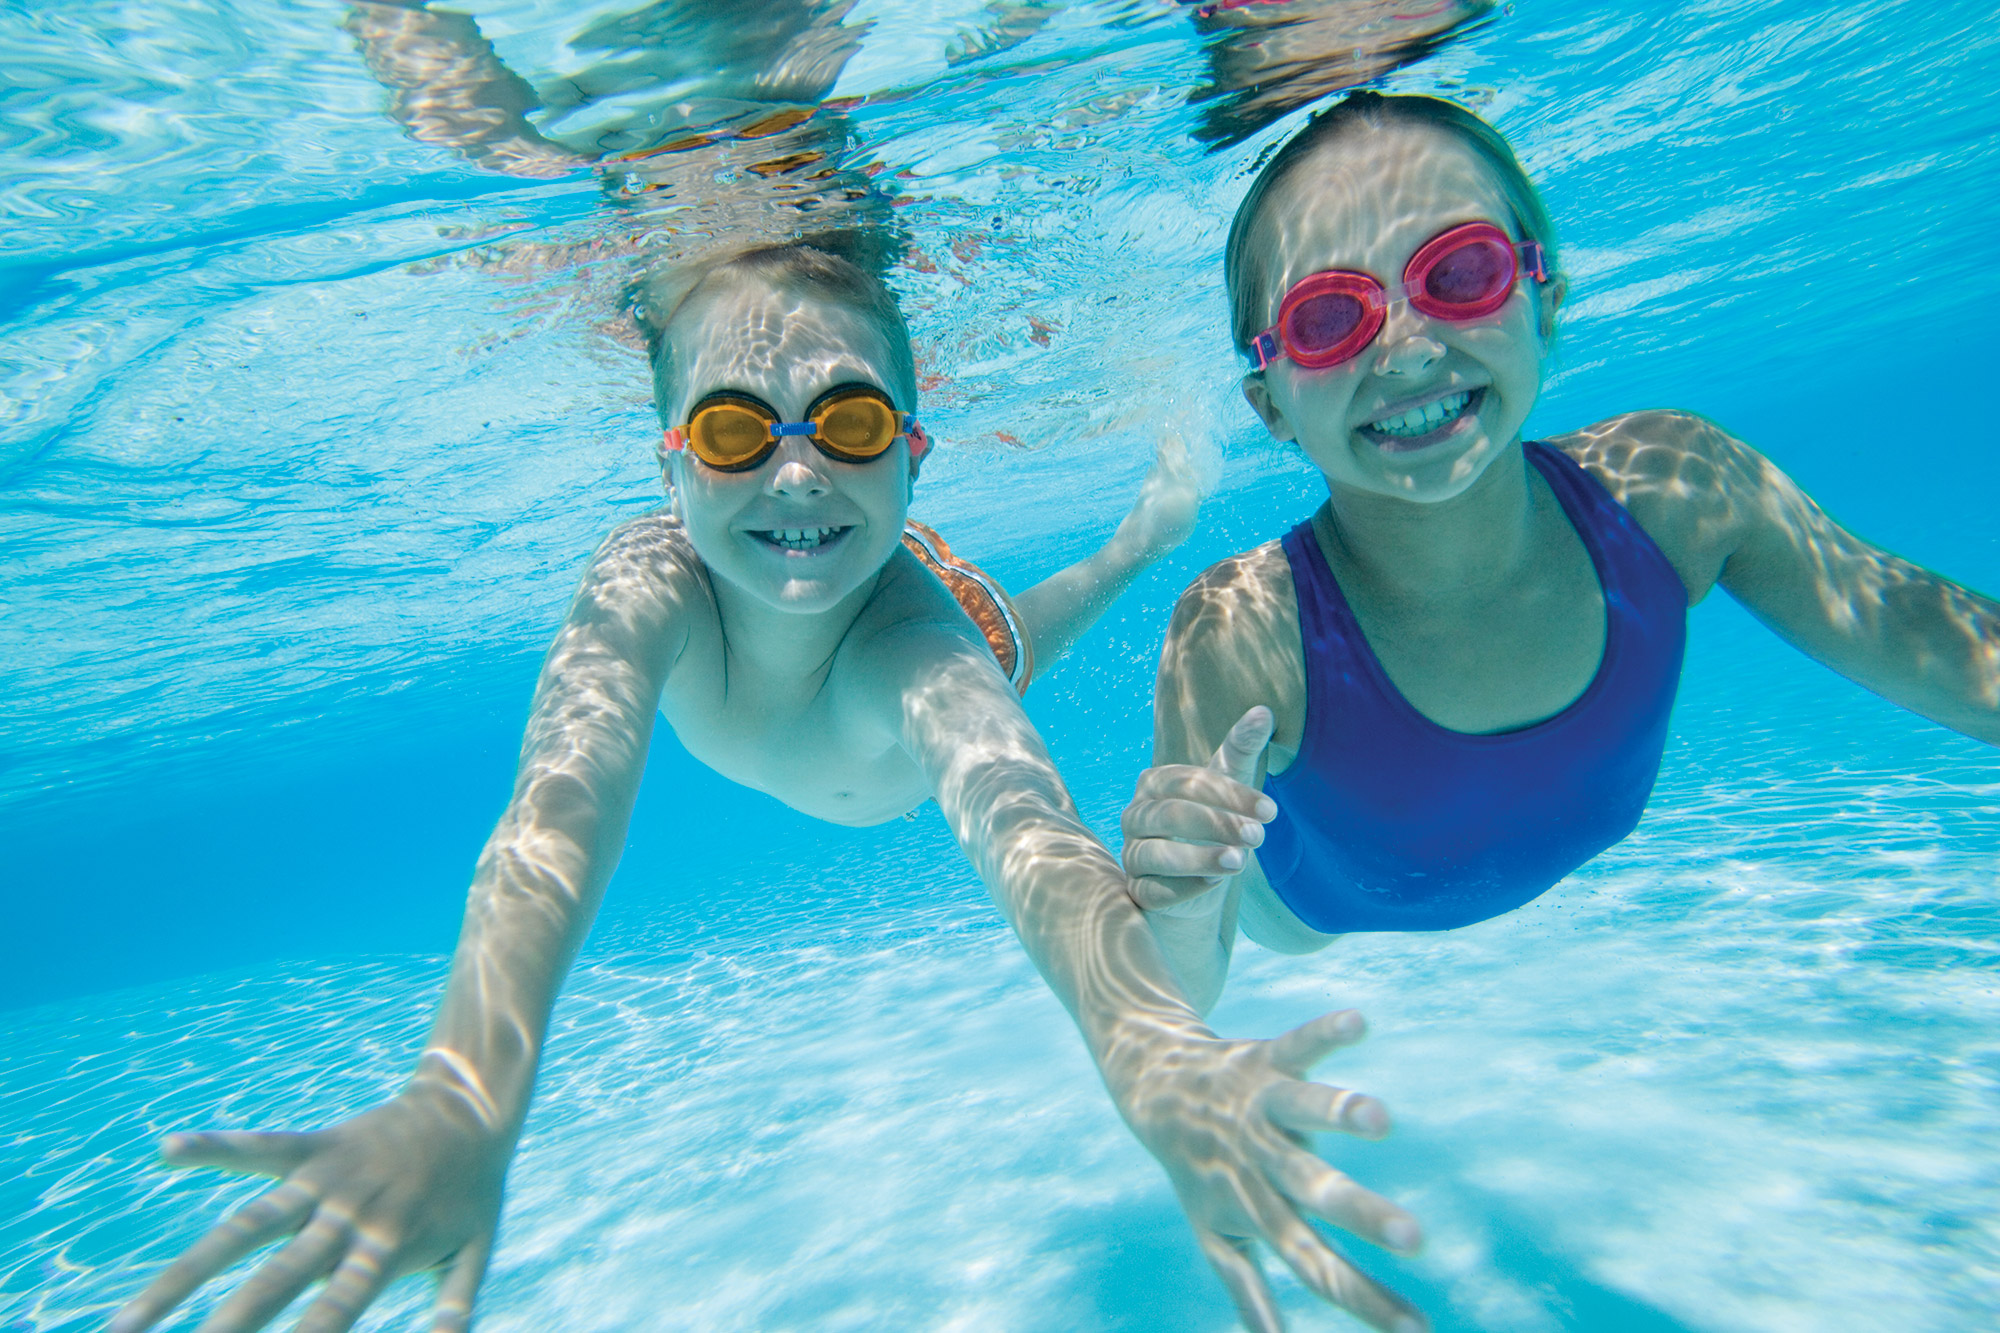 ukactive calls for greater strategic alliance between sports governing bodies and leisure sector